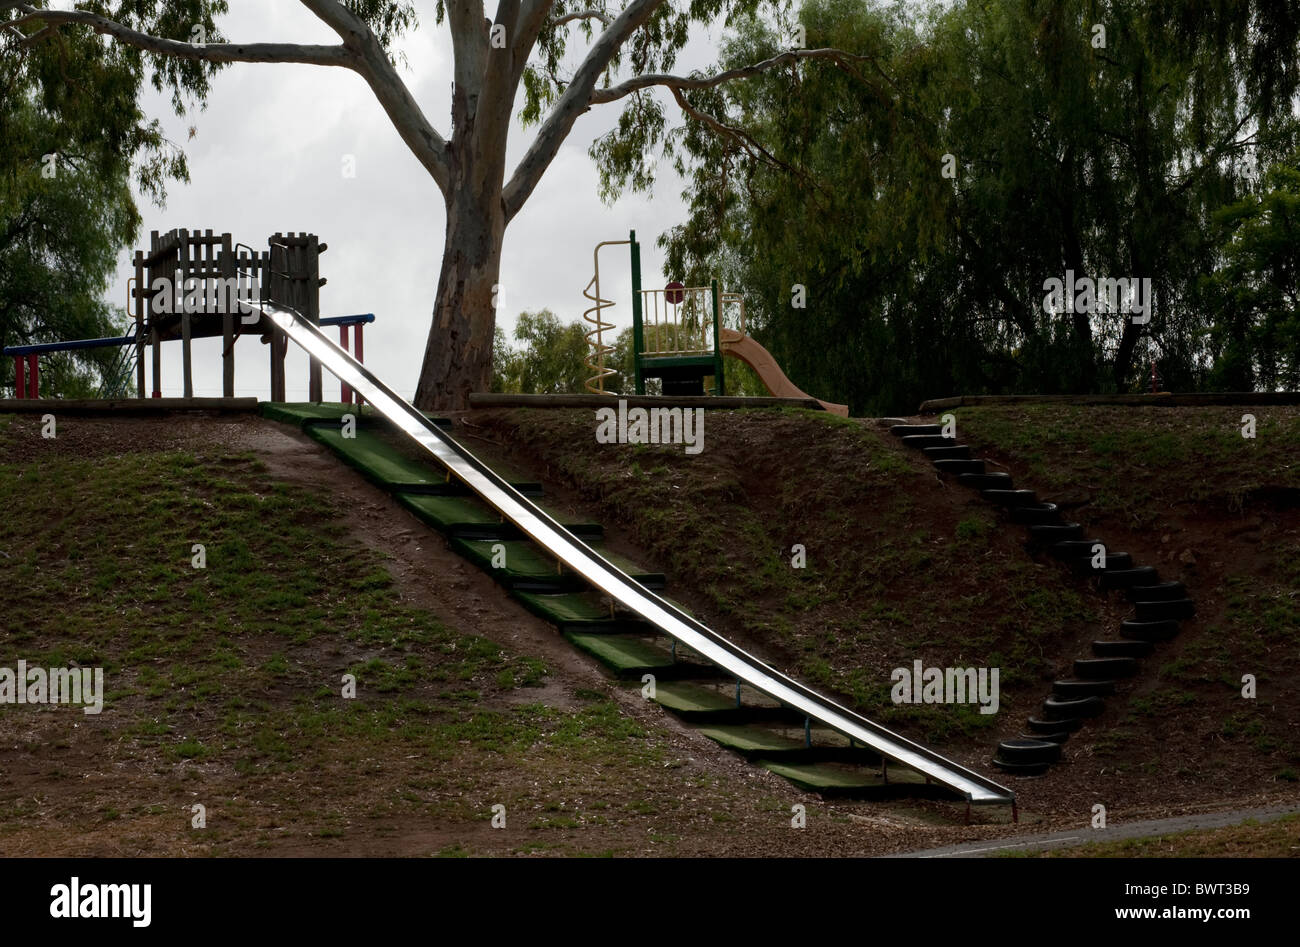 An Australian playground with a slippery dip or slide and a staircase made of re-purposed car tires. - Stock Image